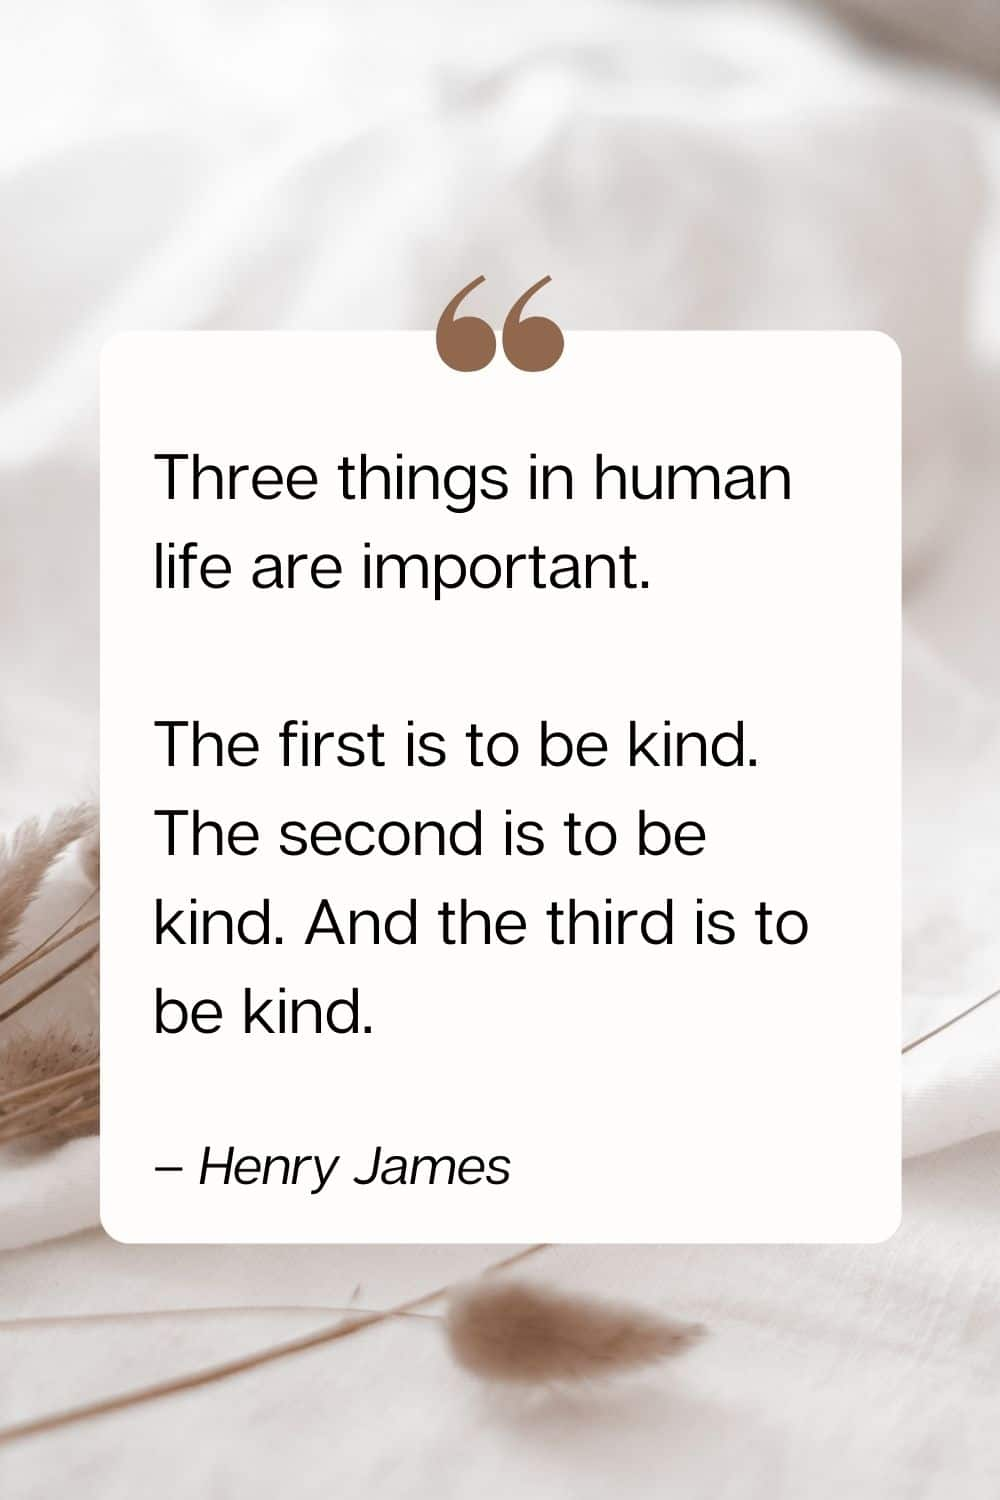 quote - Three things in human life are important. The first is to be kind. The second is to be kind. And the third is to be kind. – Henry James